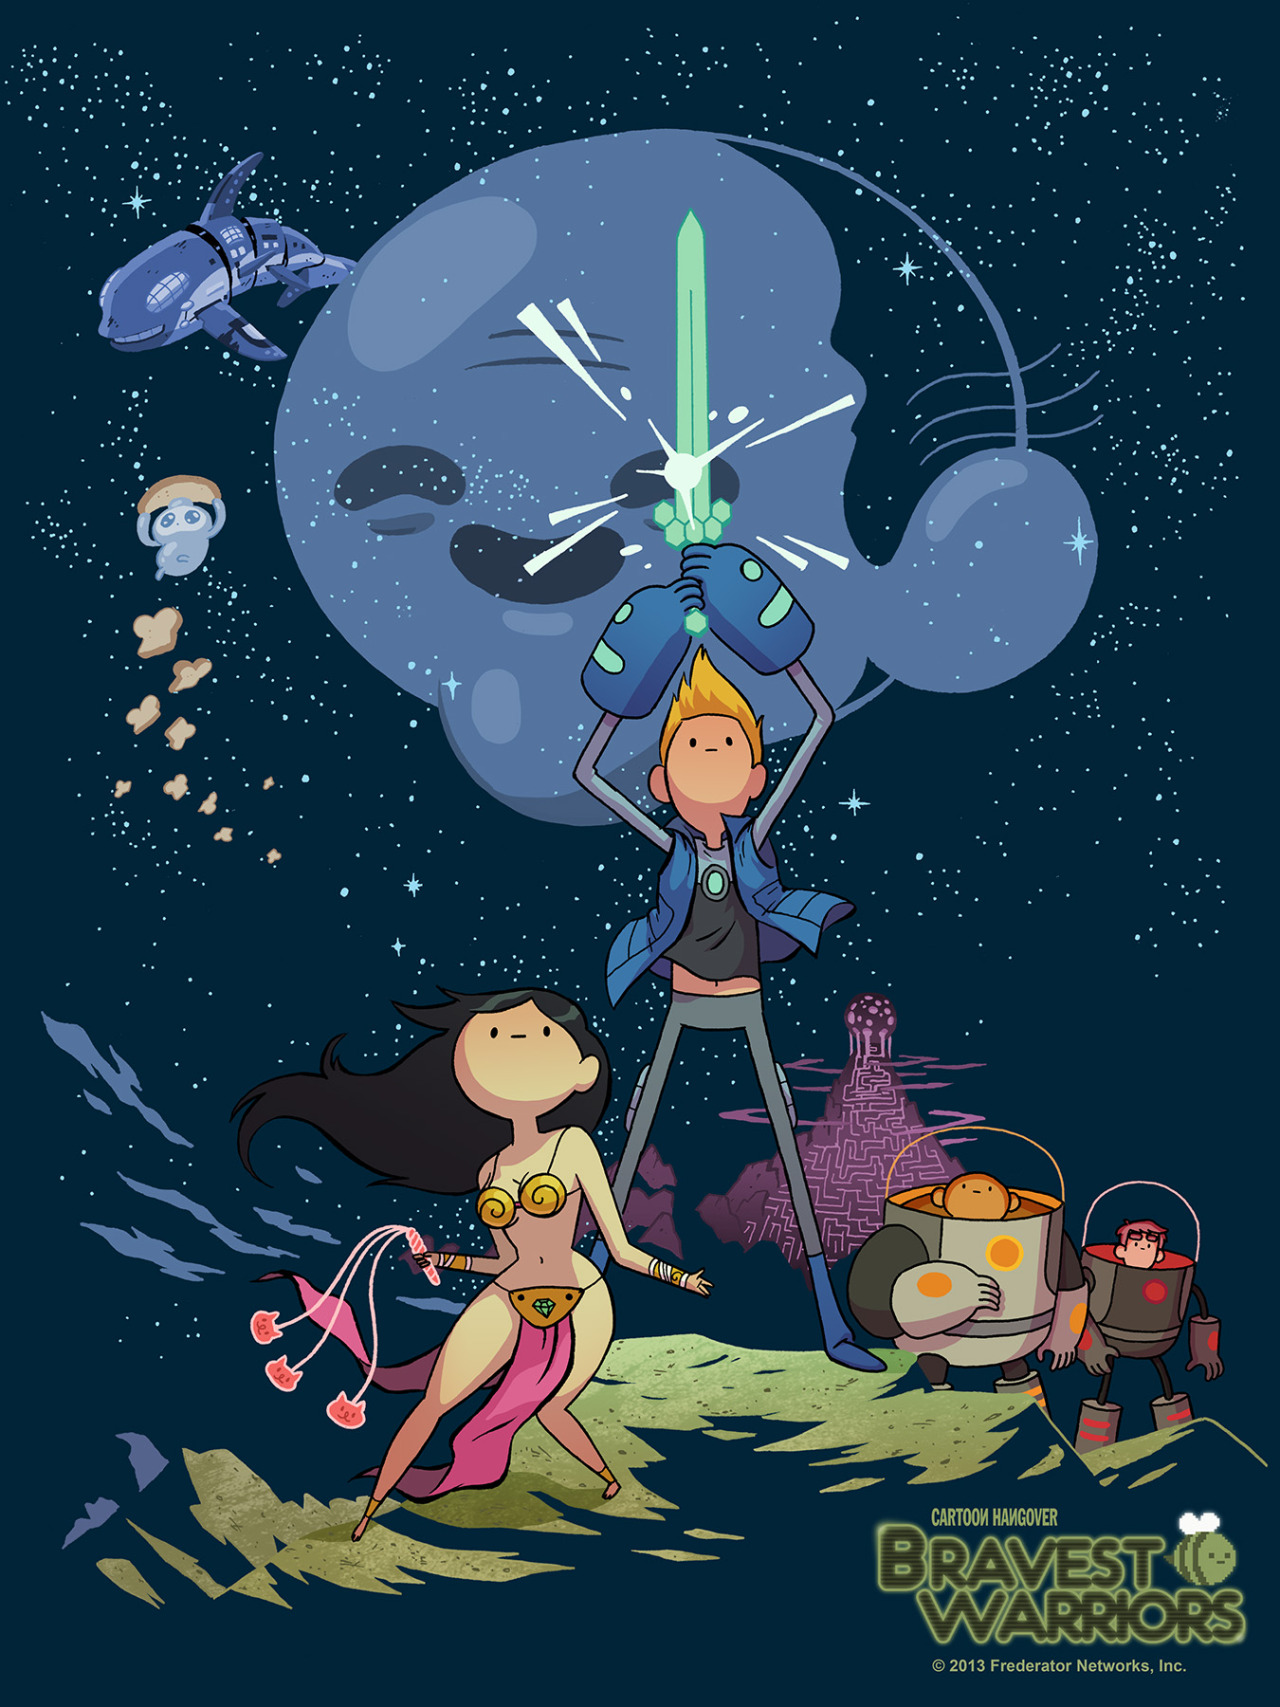 Hero's Journey Thanks to Mr Julian Callos for this terrific Bravest Warriors take on the Brothers Hildebrandt classic. Break open that piggy bank, because Julian's art, thanks to Mighty Fine, is now available on a print, an iPhone case, and a T-shirt.